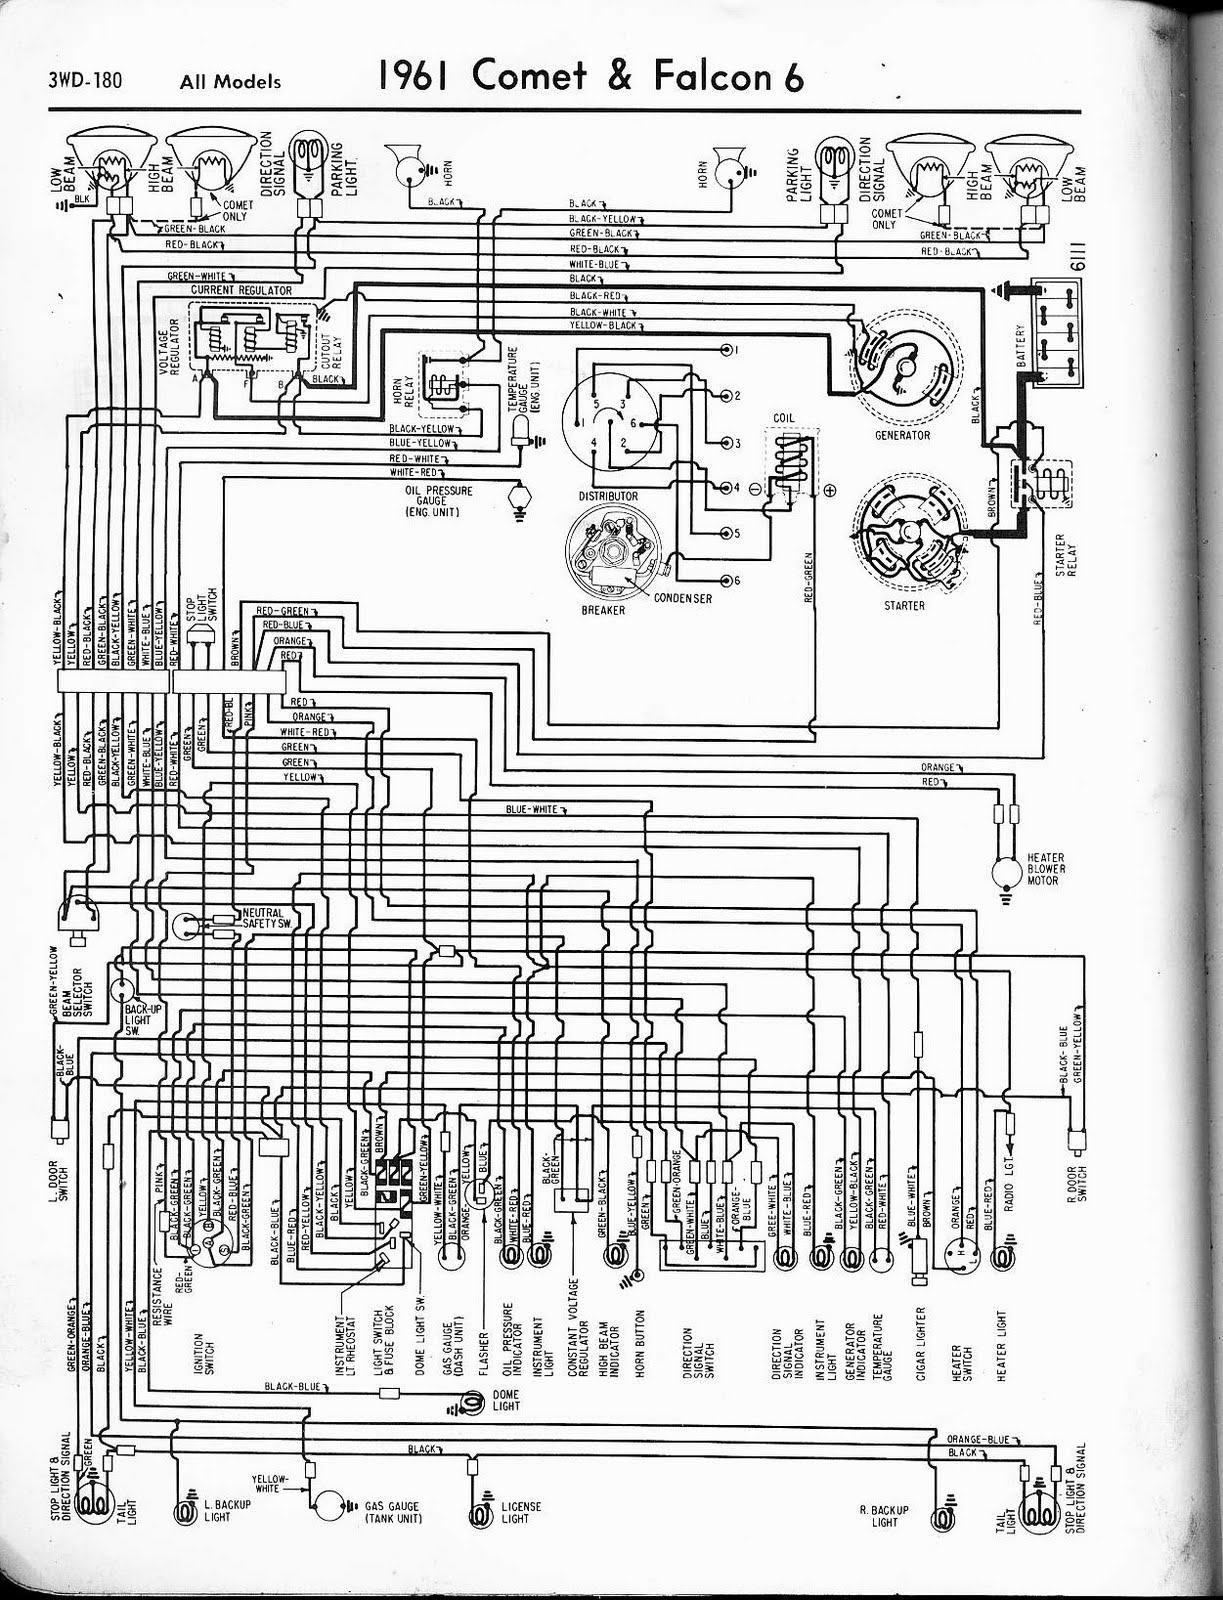 1967 Oldsmobile Wiring Schematic Download Diagrams 1969 Toronado Diagram Free Auto 1961 Ford Falcon Comet 1965